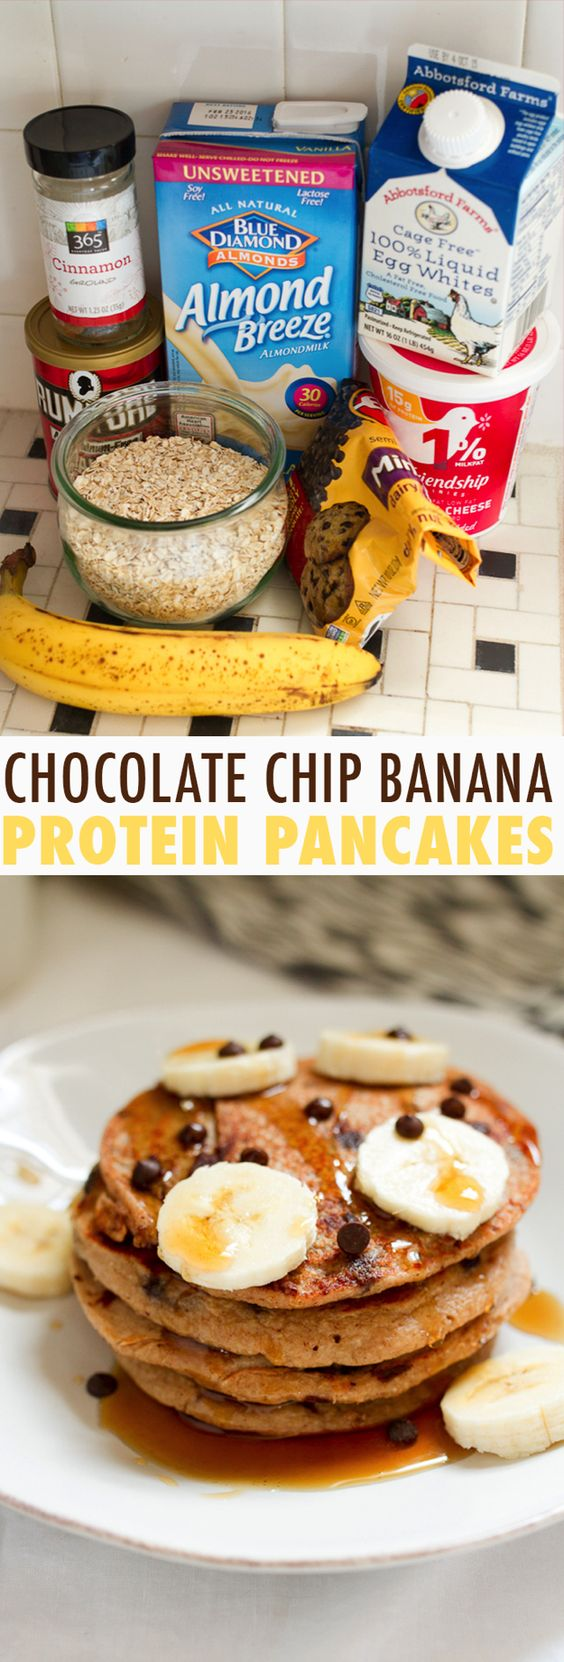 These healthy banana pancakes are made with cottage cheese and egg whites so they're packed with protein and insanely filling.